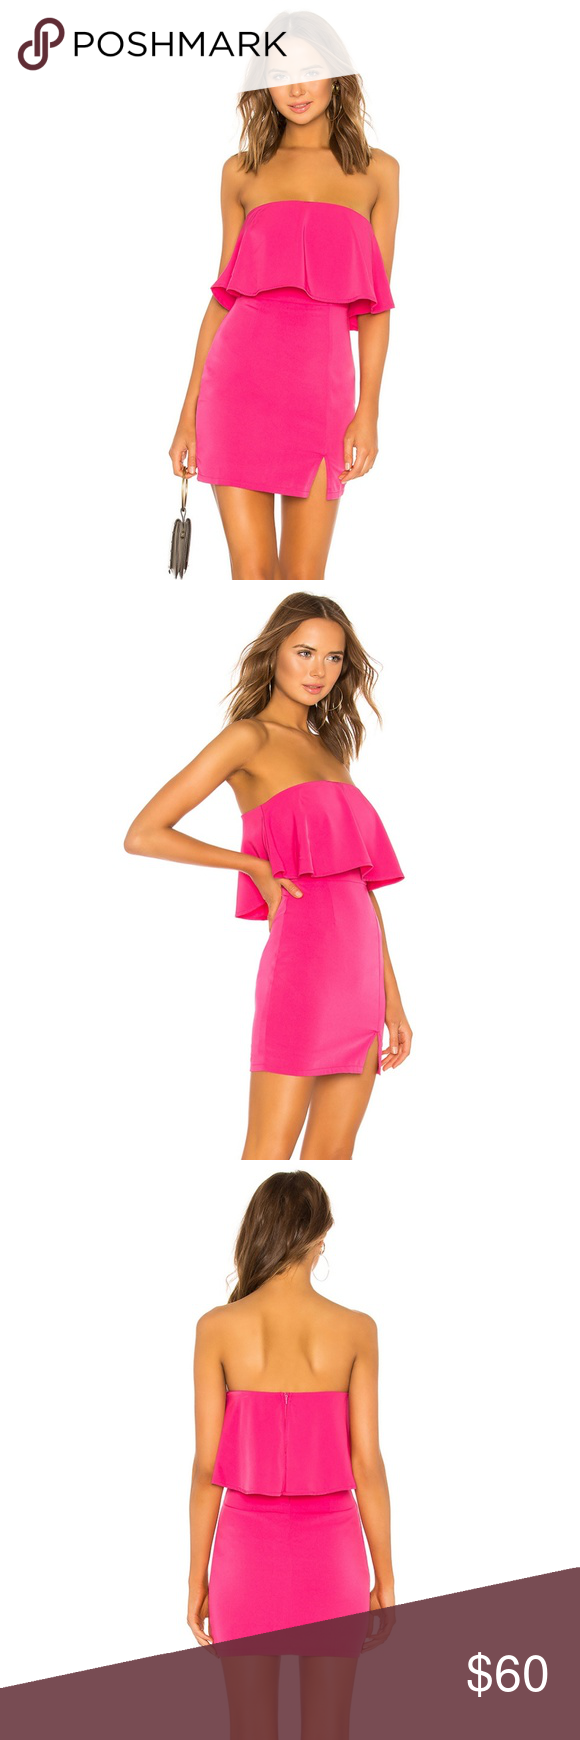 322950be94470 Revolve Catalina Ruffle Tube Mini Dress Revolve: by the way: Hot Pink  Ruffle Tube Mini Dress. Size XS (0-2). by the way Dresses Mini